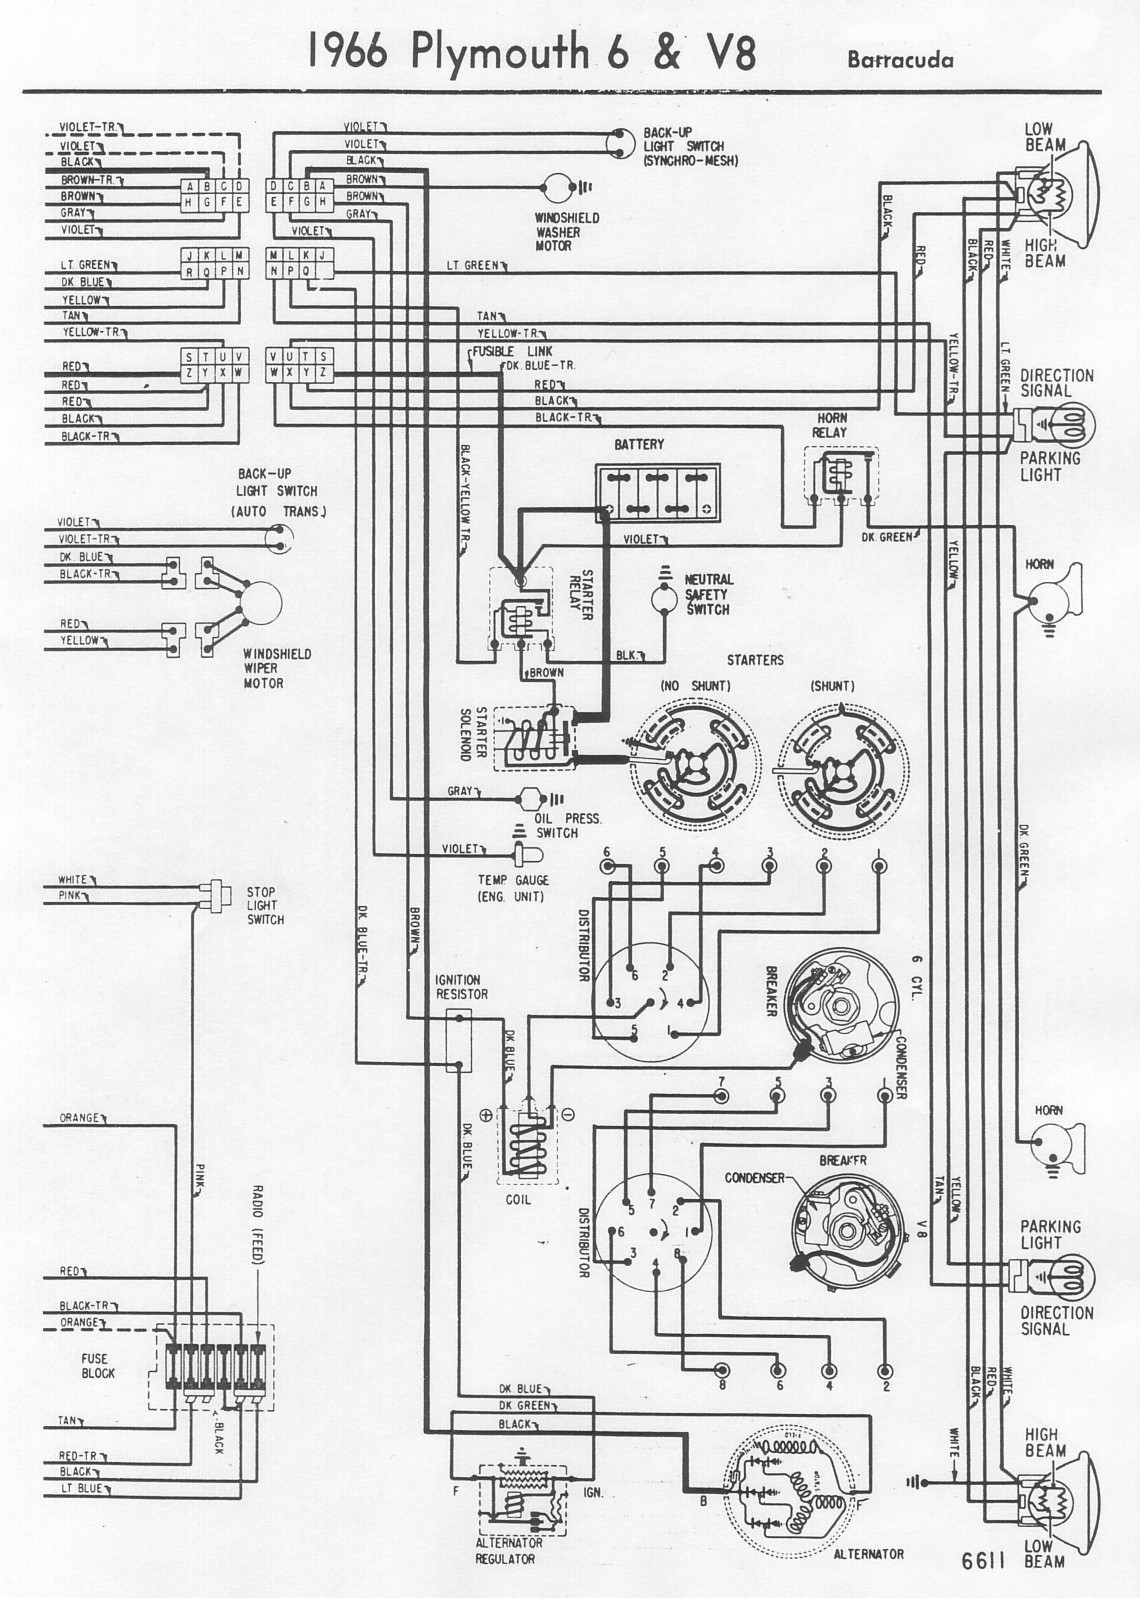 1965 plymouth barracuda wiring diagram schematic wiring diagrams rh 90  jessicadonath de 1966 Barracuda 1965 barracuda